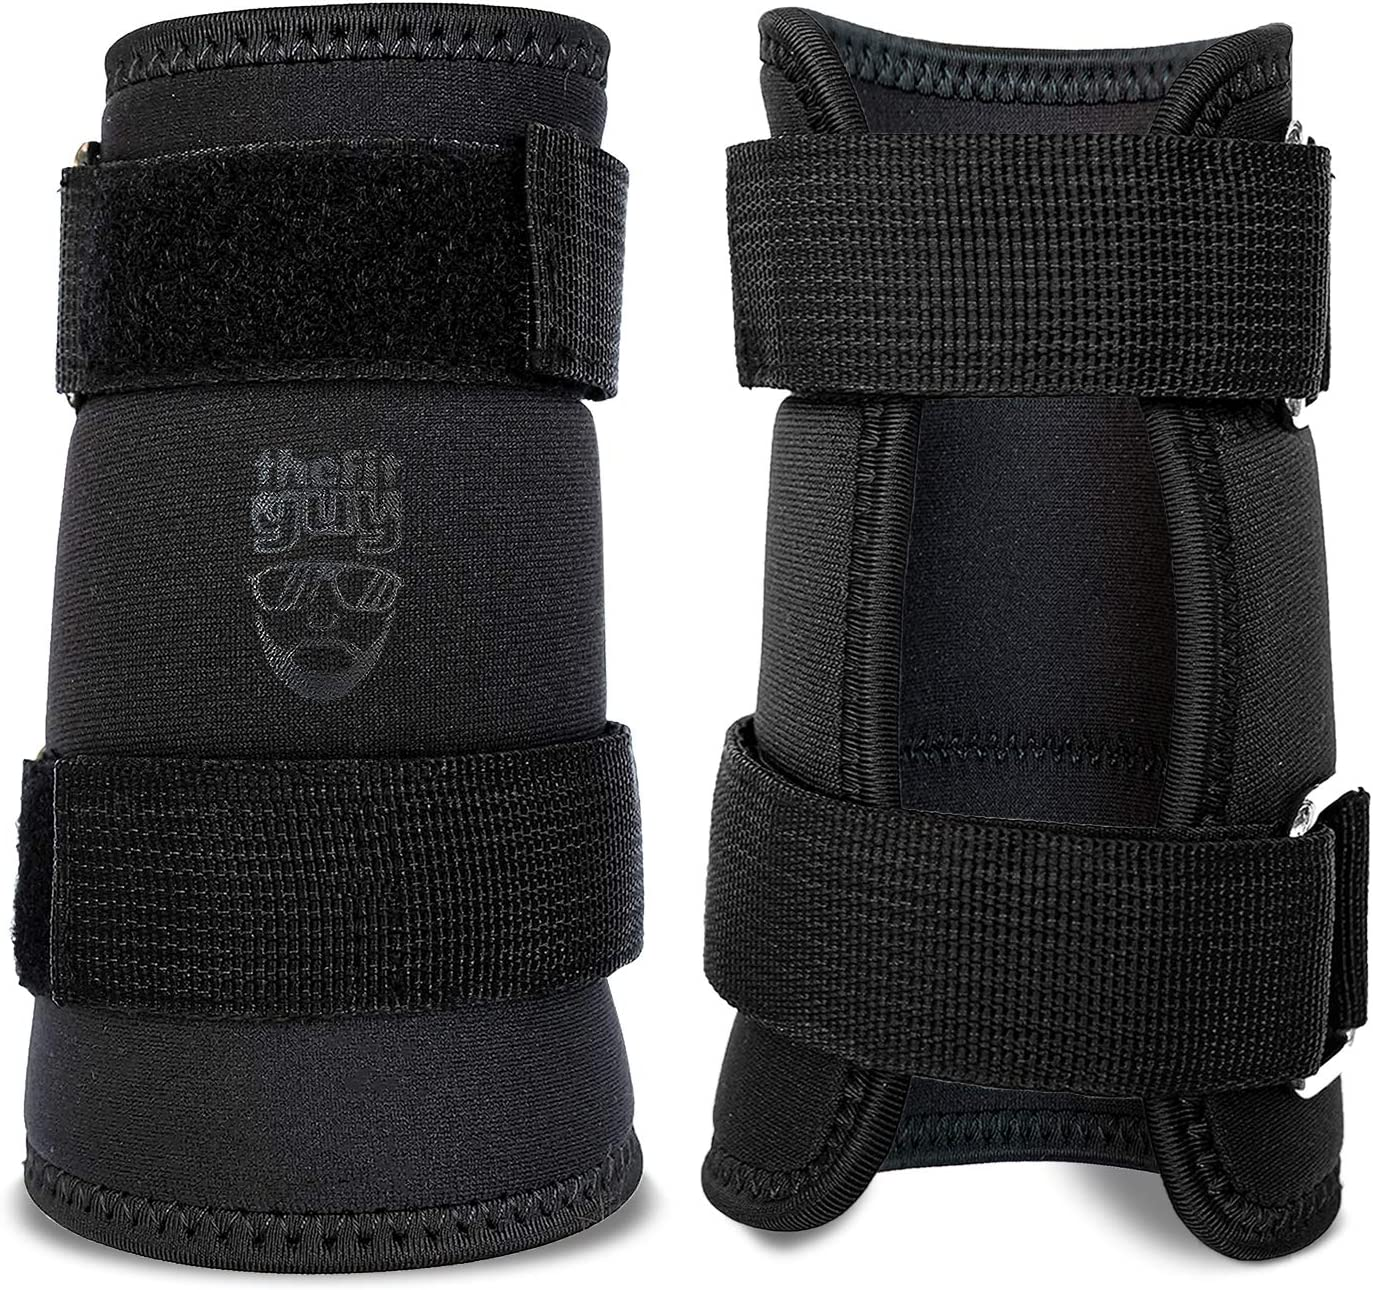 THEFITGUY Max 70% OFF Kettlebell Wrist Guards - Arm and Minimizing Bru Finally resale start